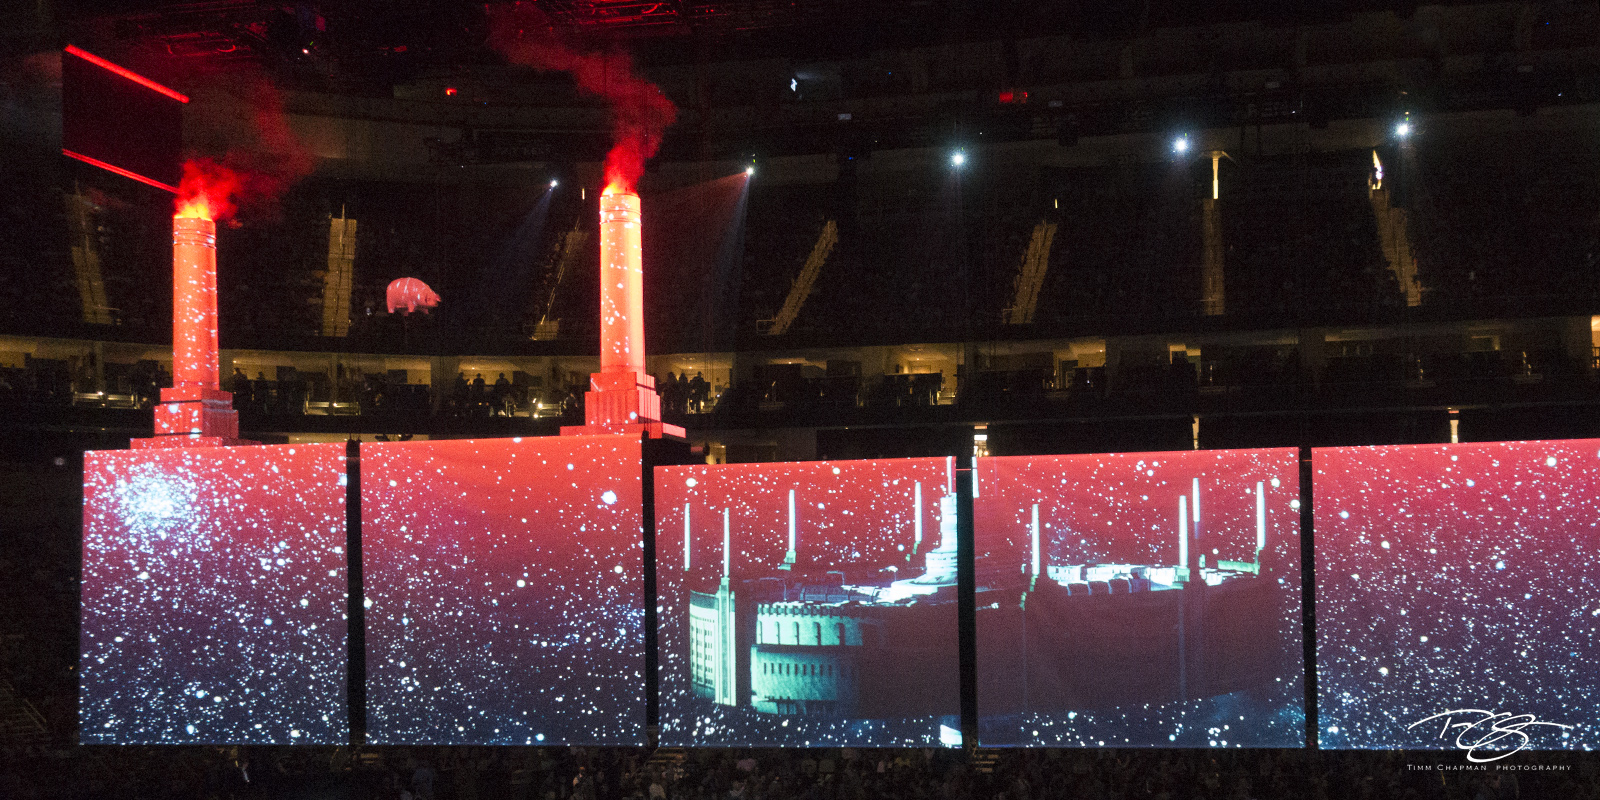 roger waters, pink floyd, in concert, performing, us + them, us and them, battersea power station, is this the life we really want, pittsburgh, projection, photo